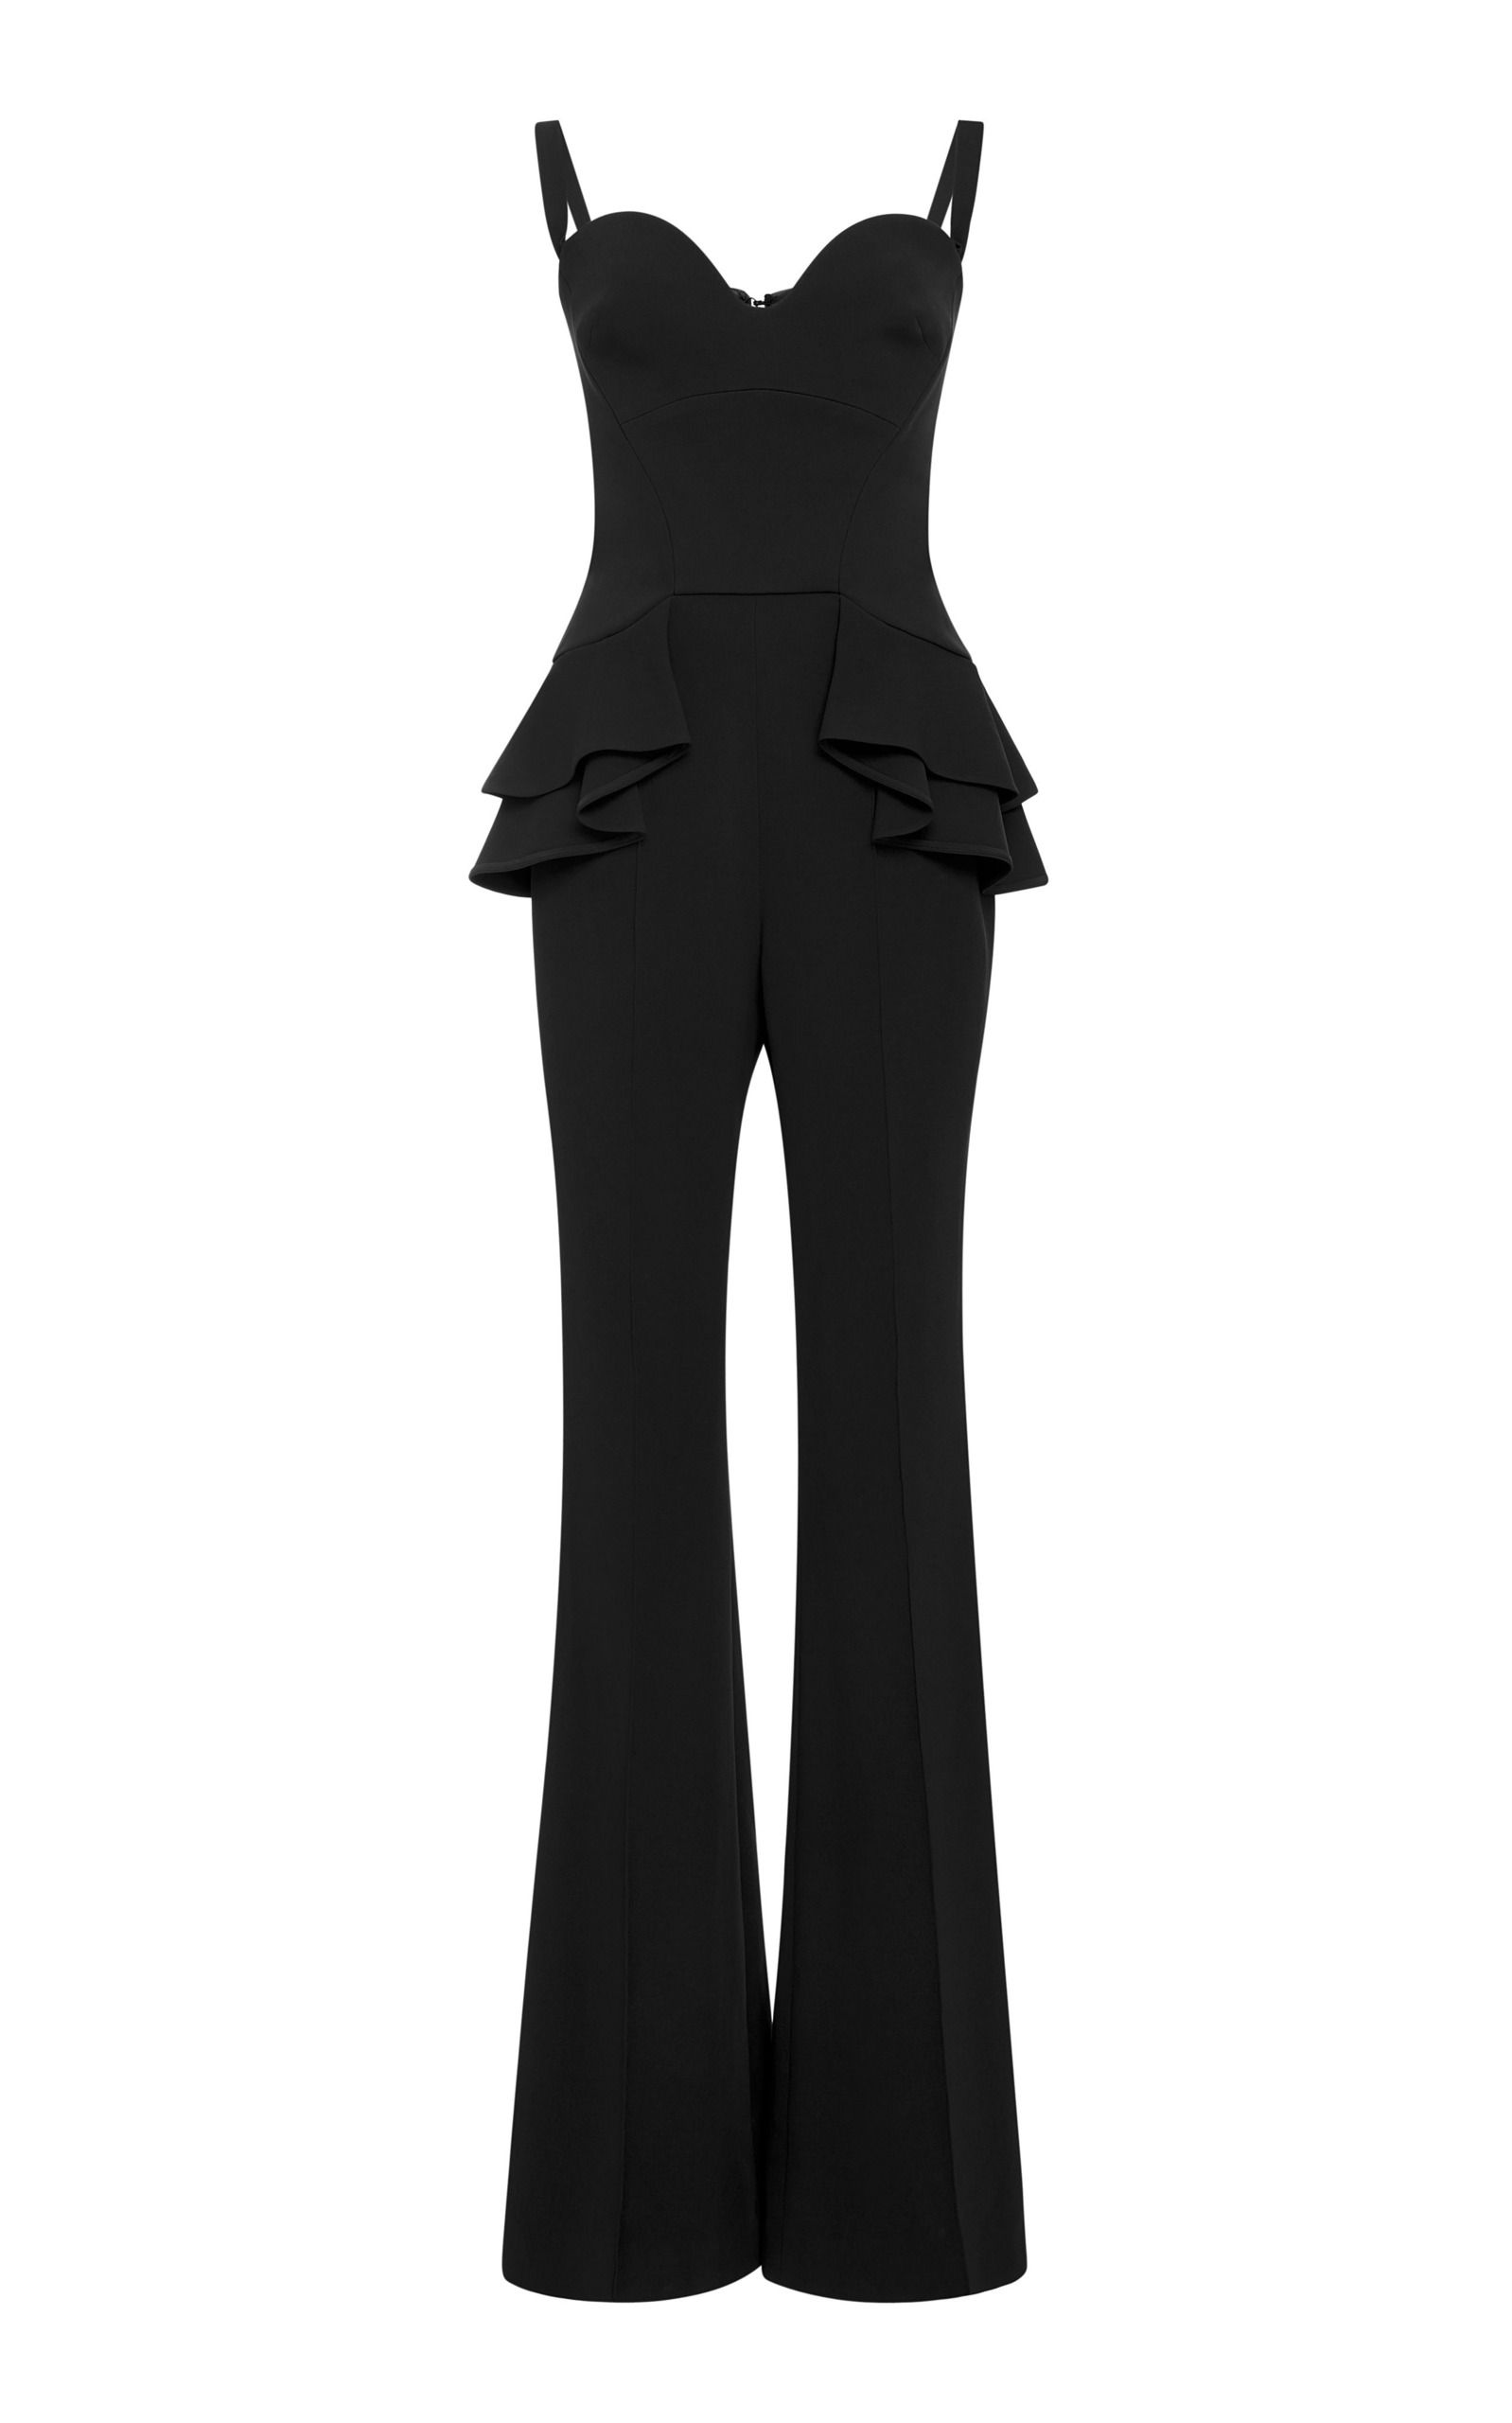 3e20107c627f Elie Saab Resort 2018 Collection Photos (Peplum Jumpsuit - Black ...